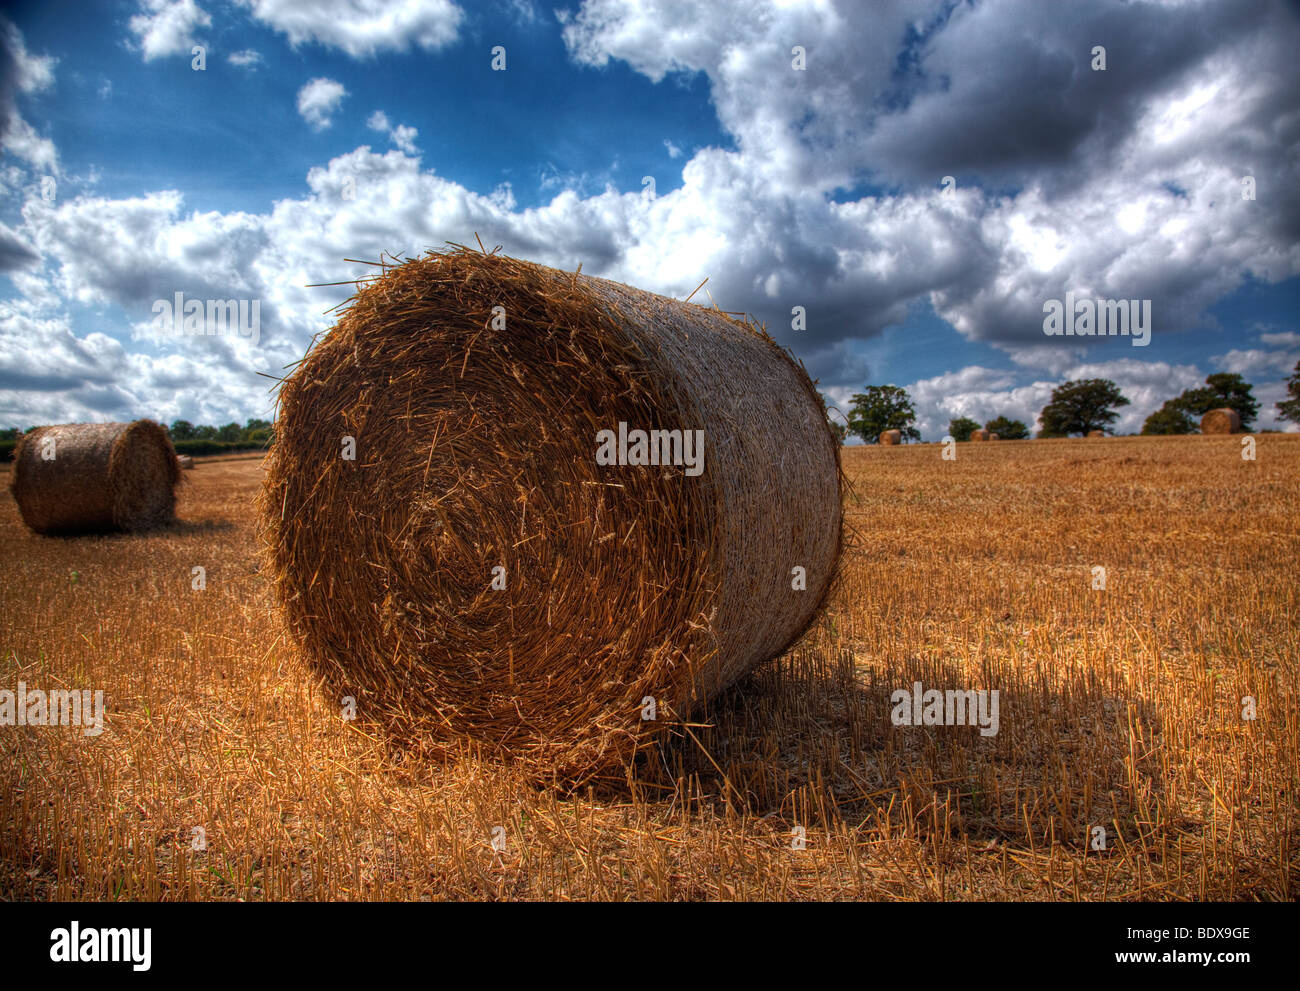 Hay rolls drying in a wheat field in Hertfordshire - Stock Image